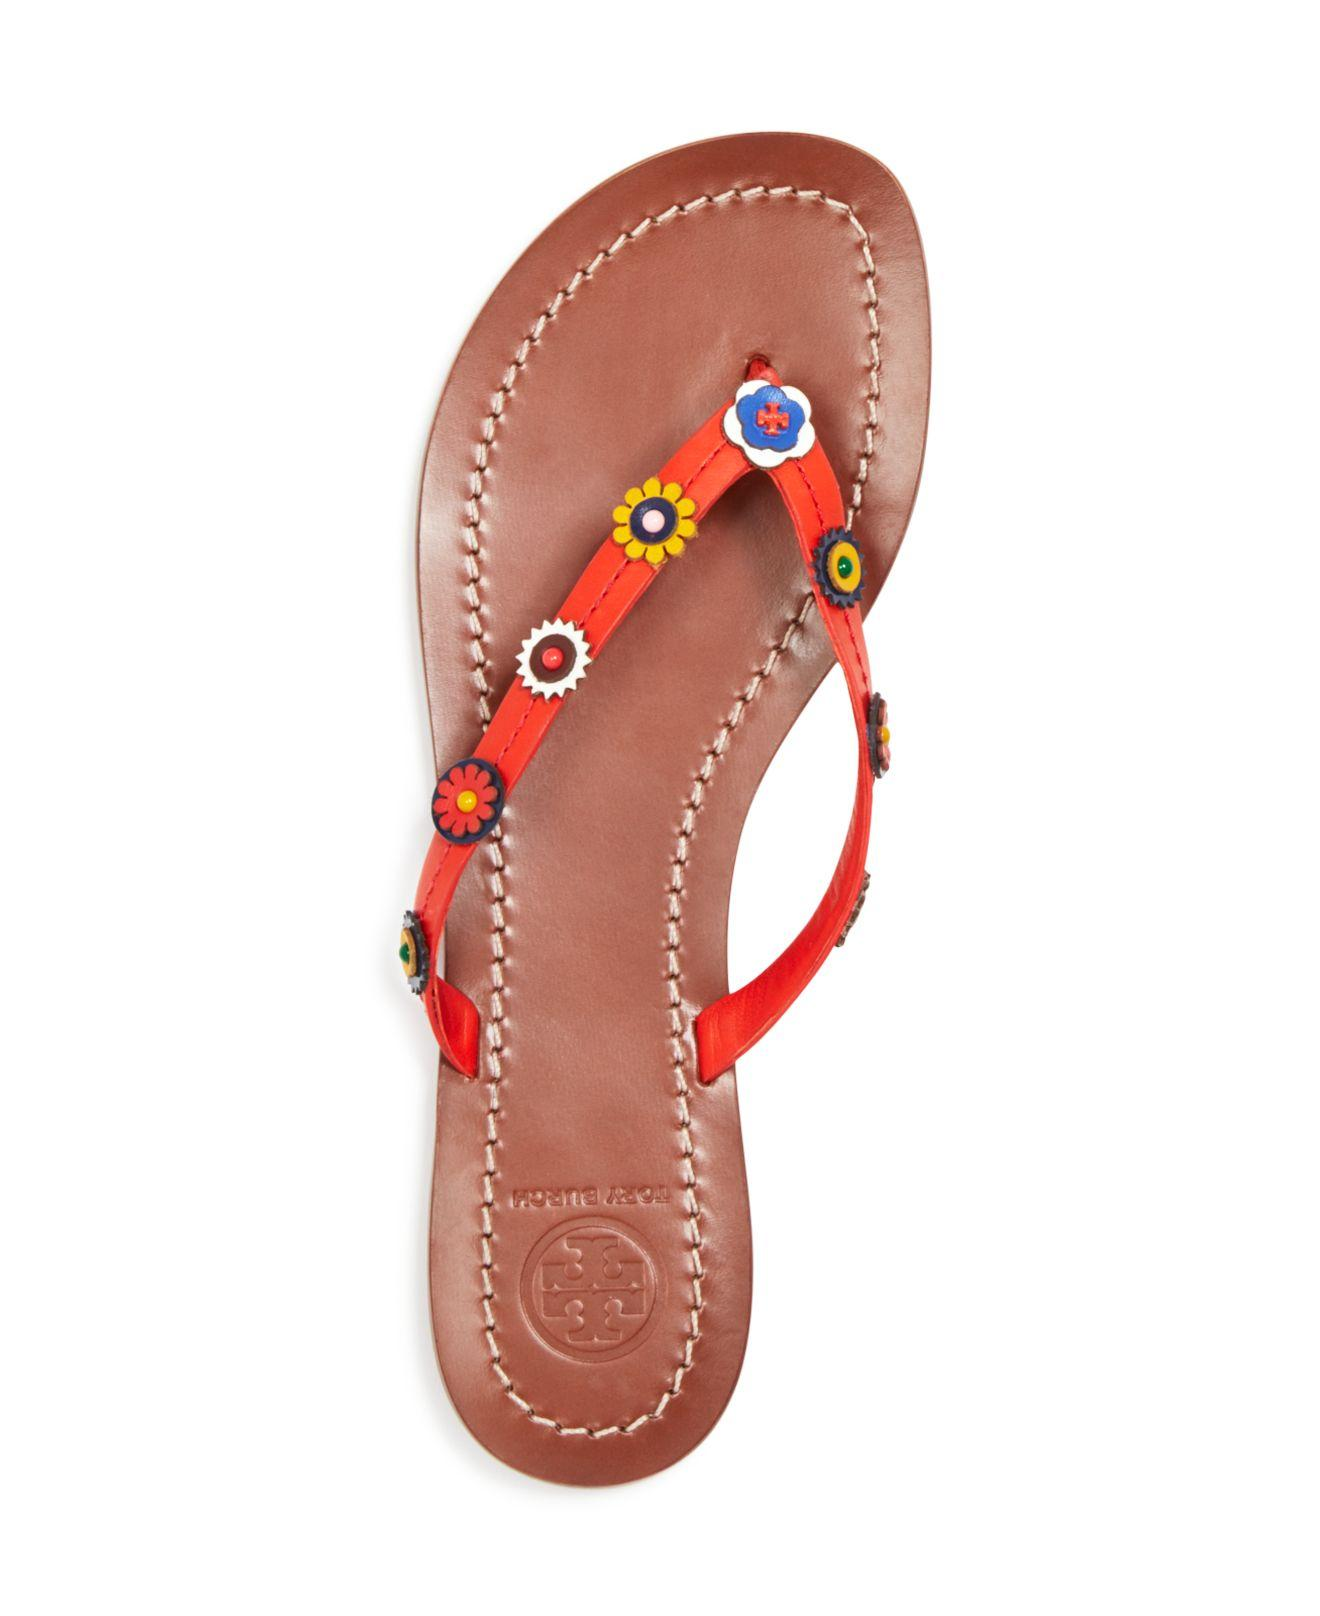 97596a824 Tory Burch Marguerite Terra Leather Thong Sandals in Red - Lyst